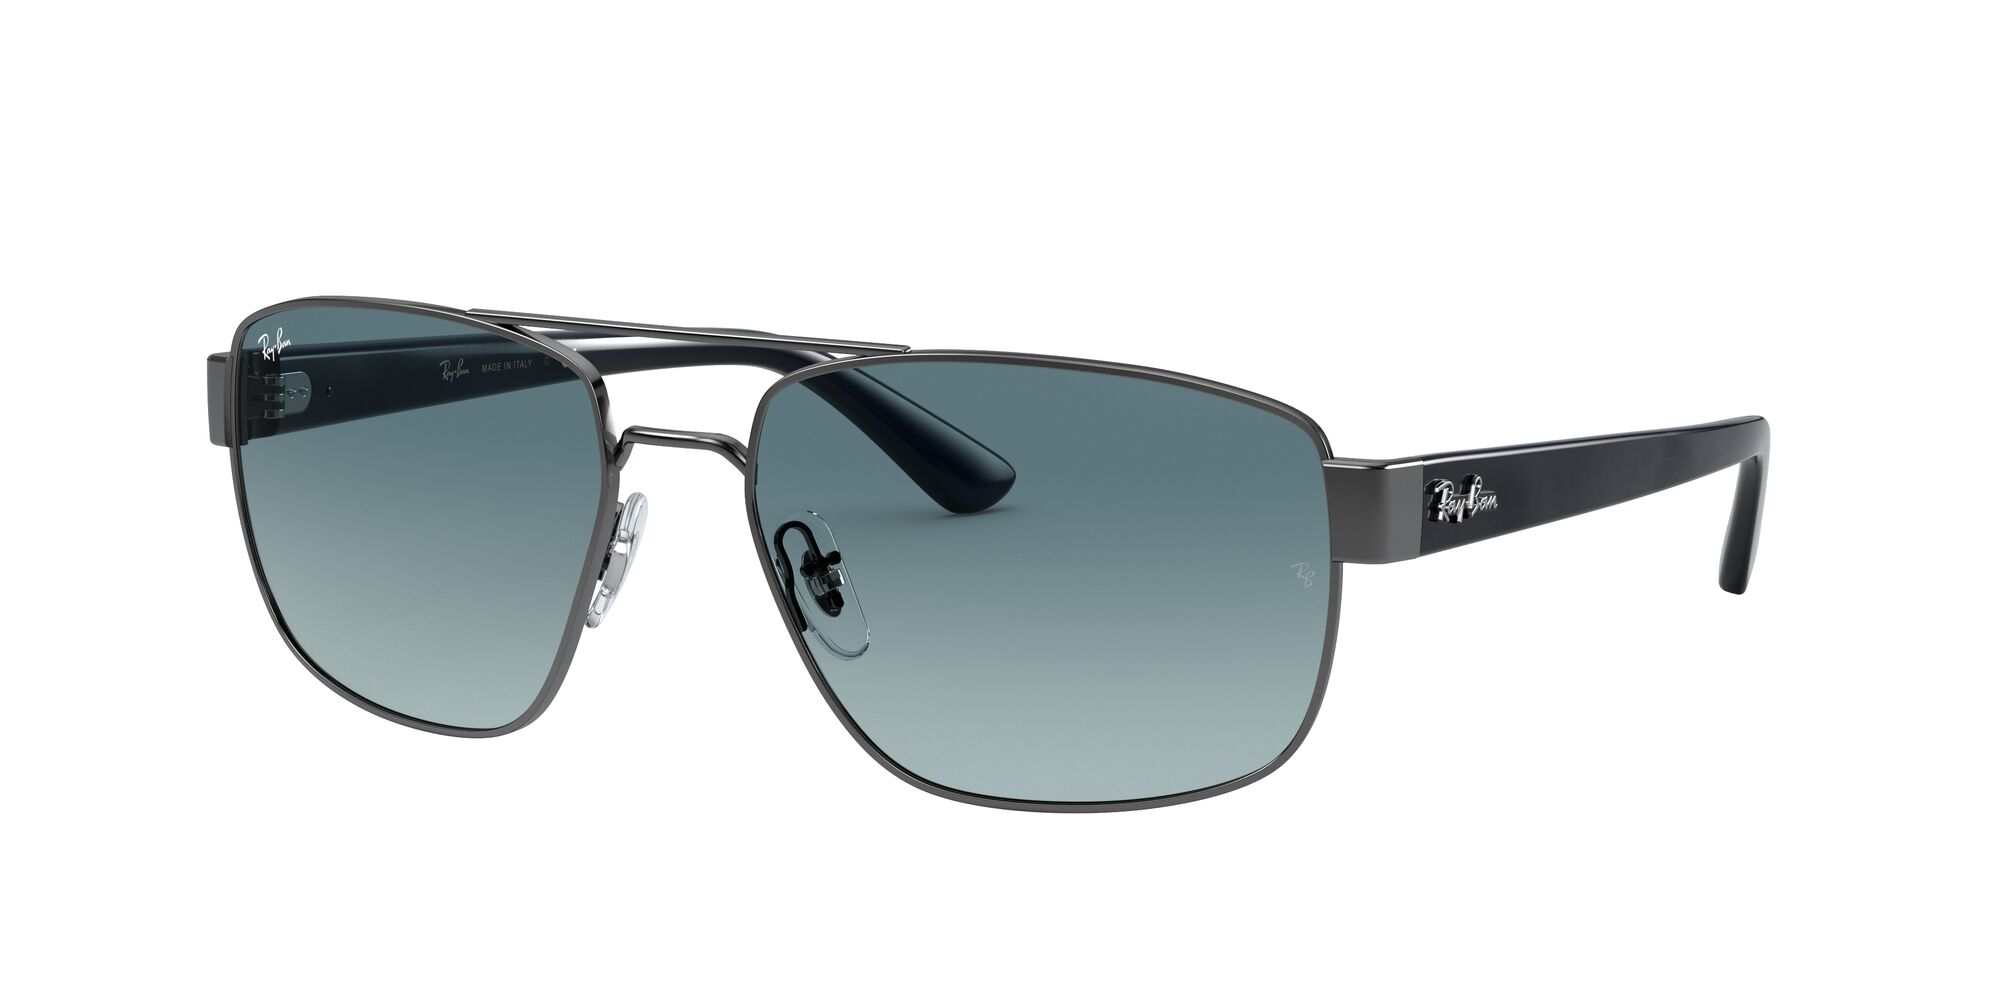 Angle_Left01 Ray-Ban Ray-Ban 0RB3663 004/3M 59/17 Zilver/Blauw